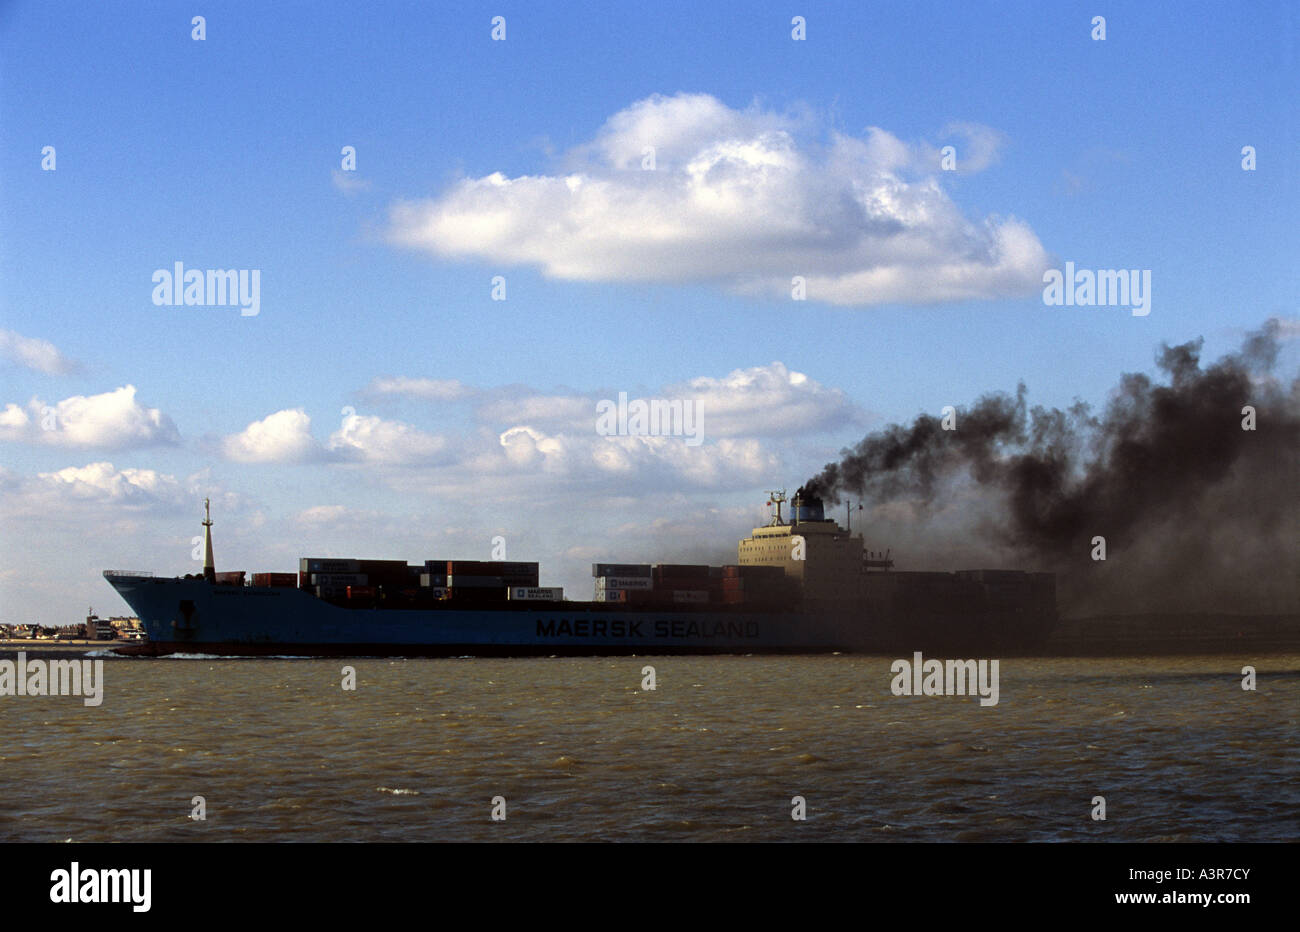 A container ship which burns a cheaper sulphur-rich fuel called 'bunker oil', port of Felixstowe, Suffolk, - Stock Image